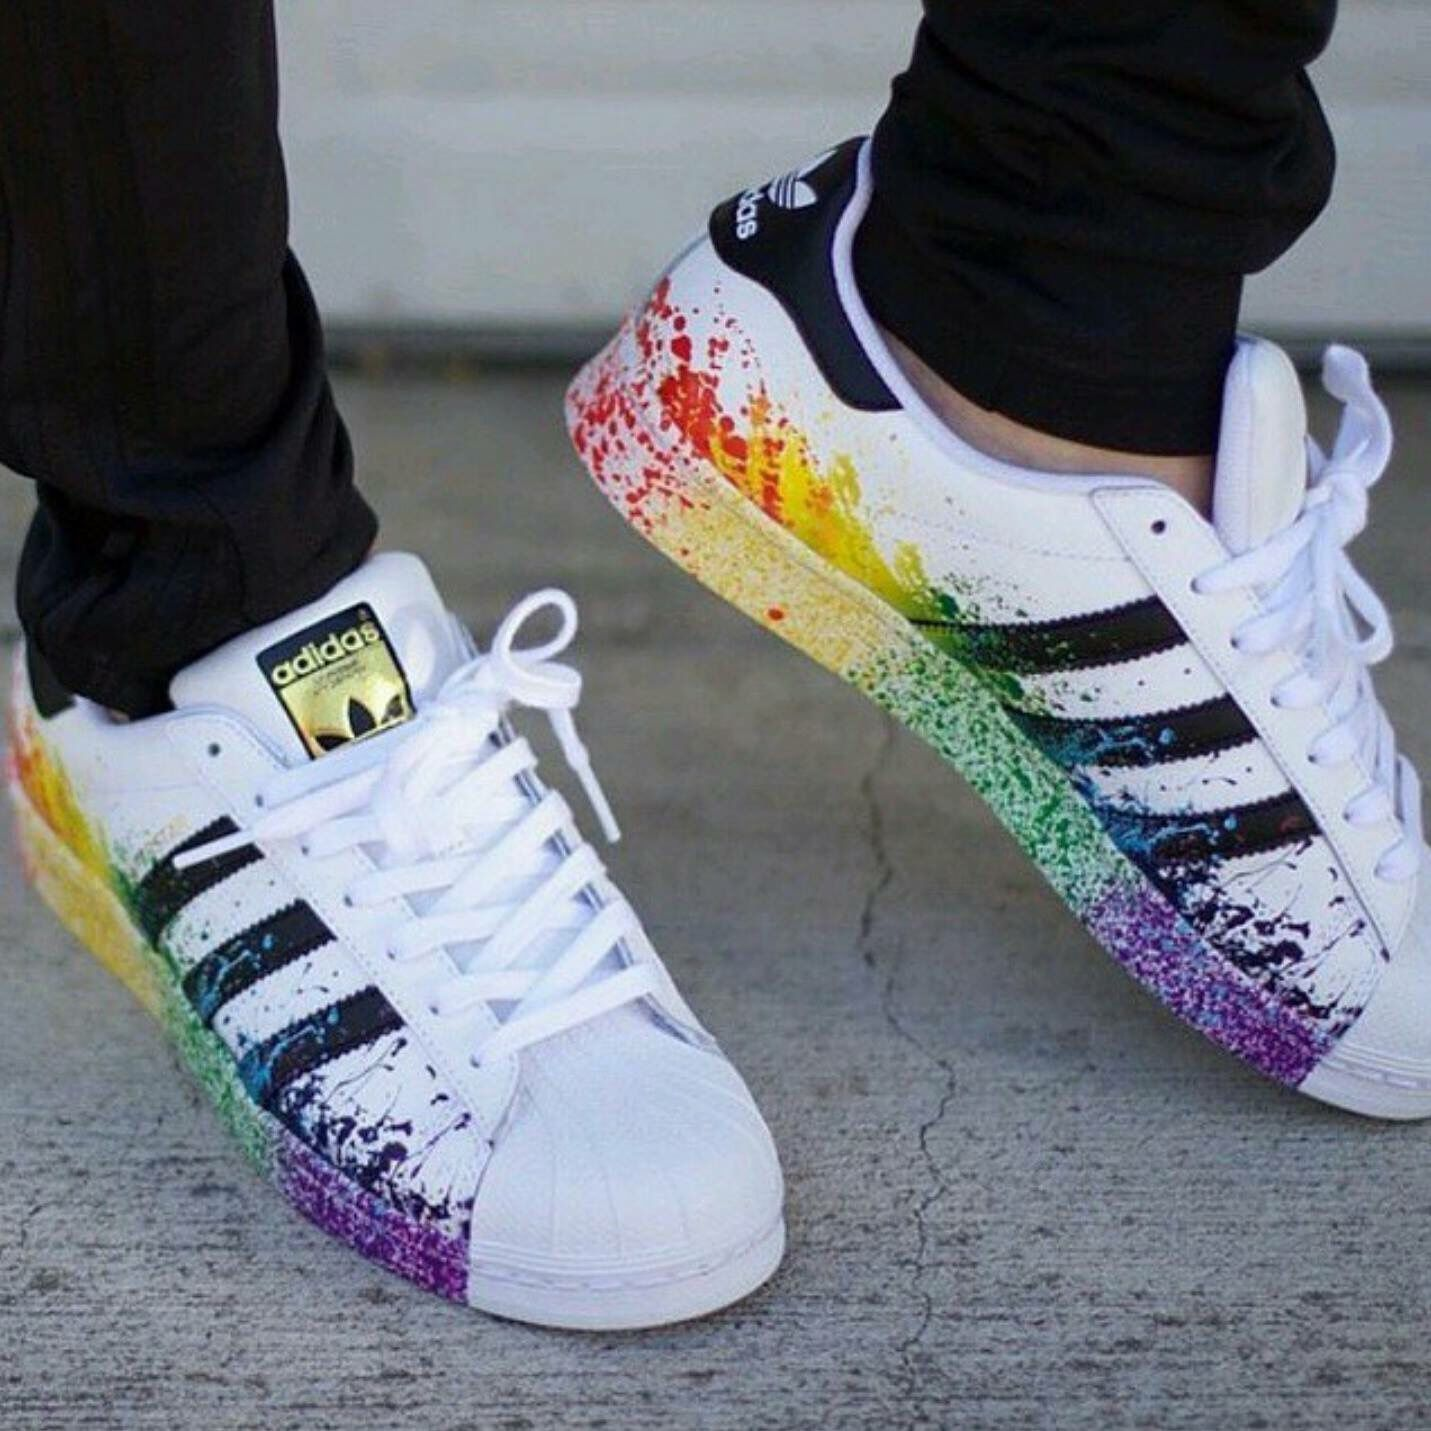 baffa66c84b Check out these adorable diy splatter adidas shoes!